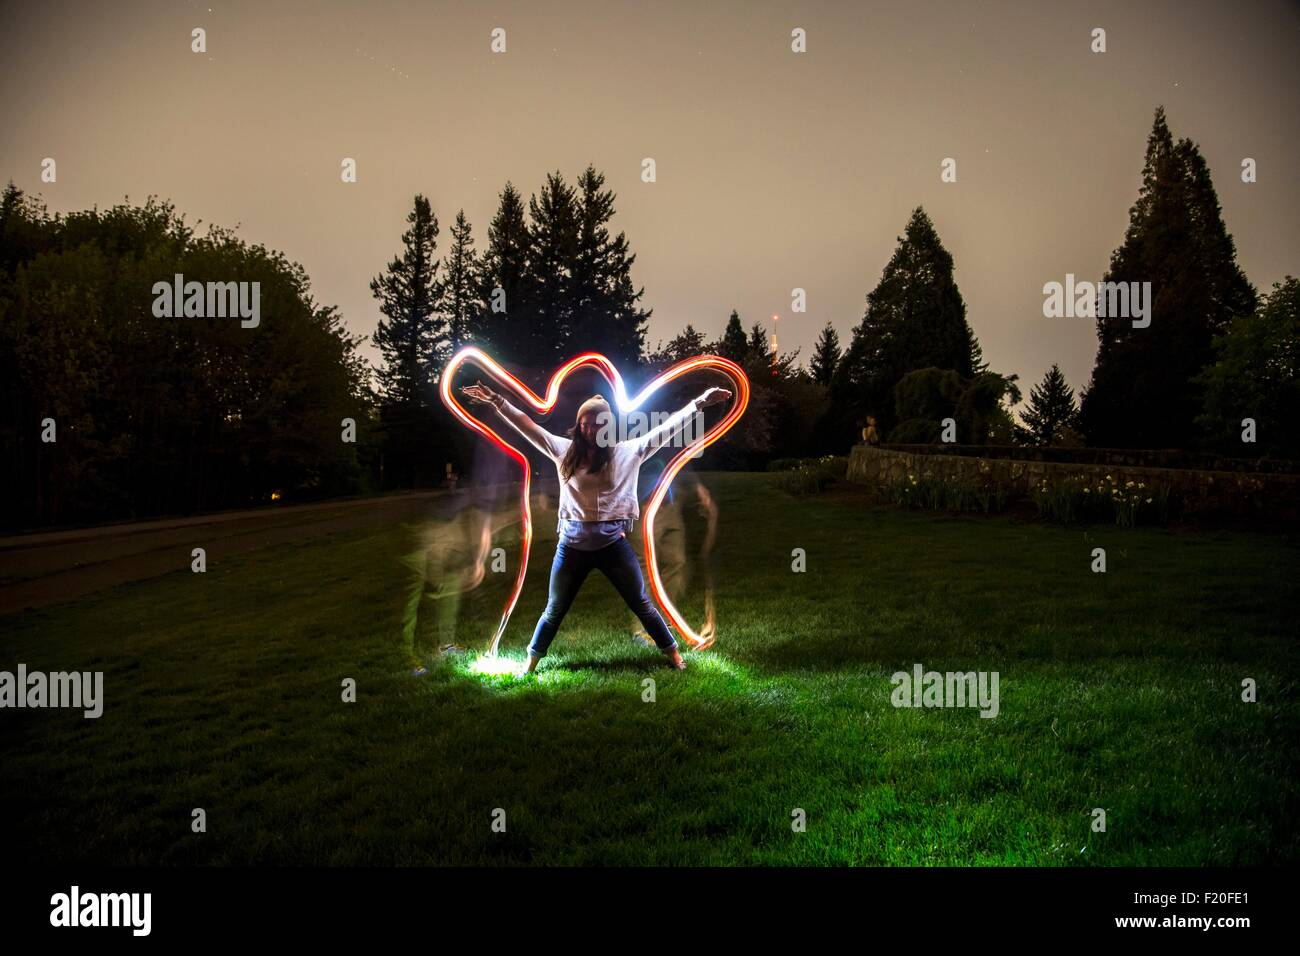 Young woman, standing in field at dusk, arms and legs outstretched in star shape, light trail tracing body shape - Stock Image